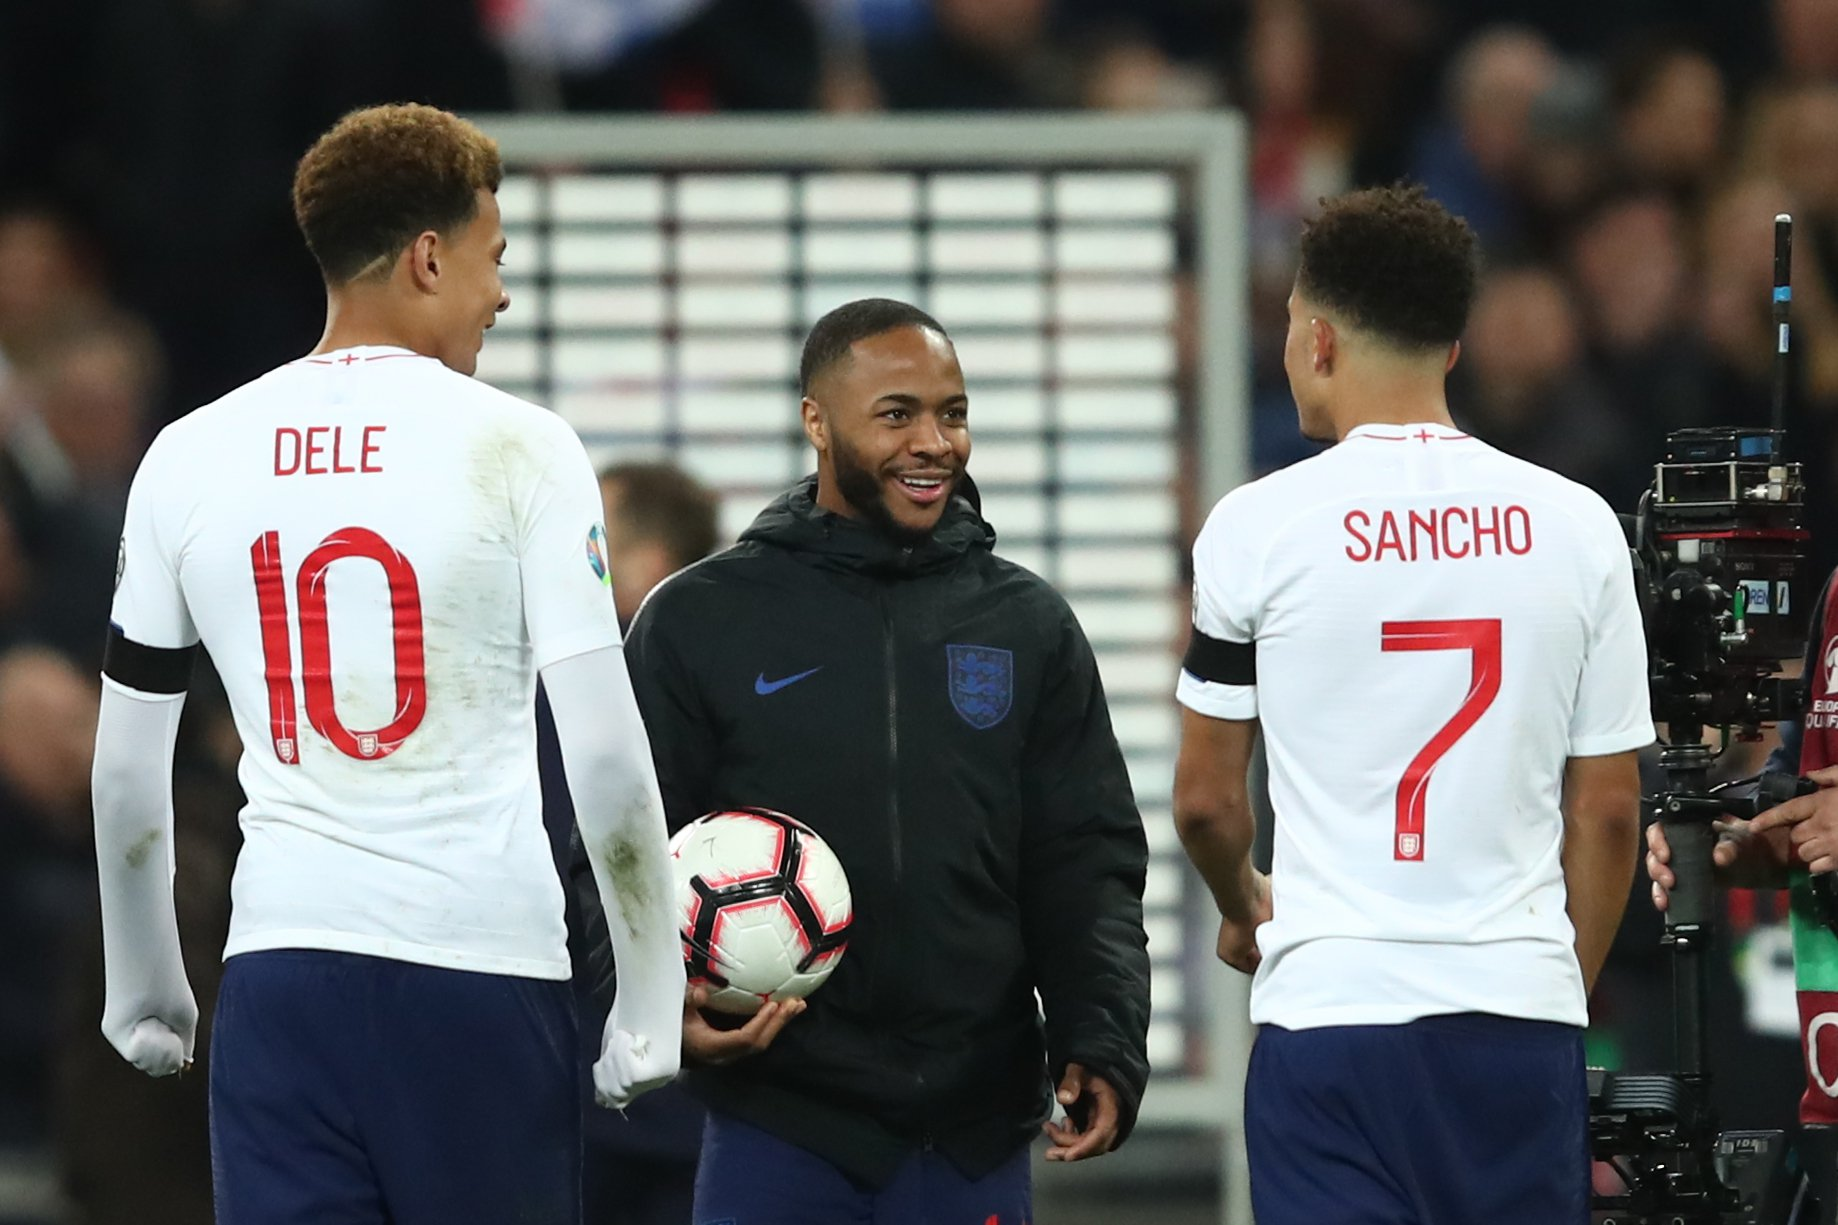 LONDON, ENGLAND - MARCH 22: Raheem Sterling of England walks off with a compare round as he speaks to Dele Alli and Jadon Sancho during a 2020 UEFA European Championships organisation A subordinate compare between England and Czech Republic during Wembley Stadium on Mar 22, 2019 in London, United Kingdom. (Photo by Marc Atkins/Getty Images)